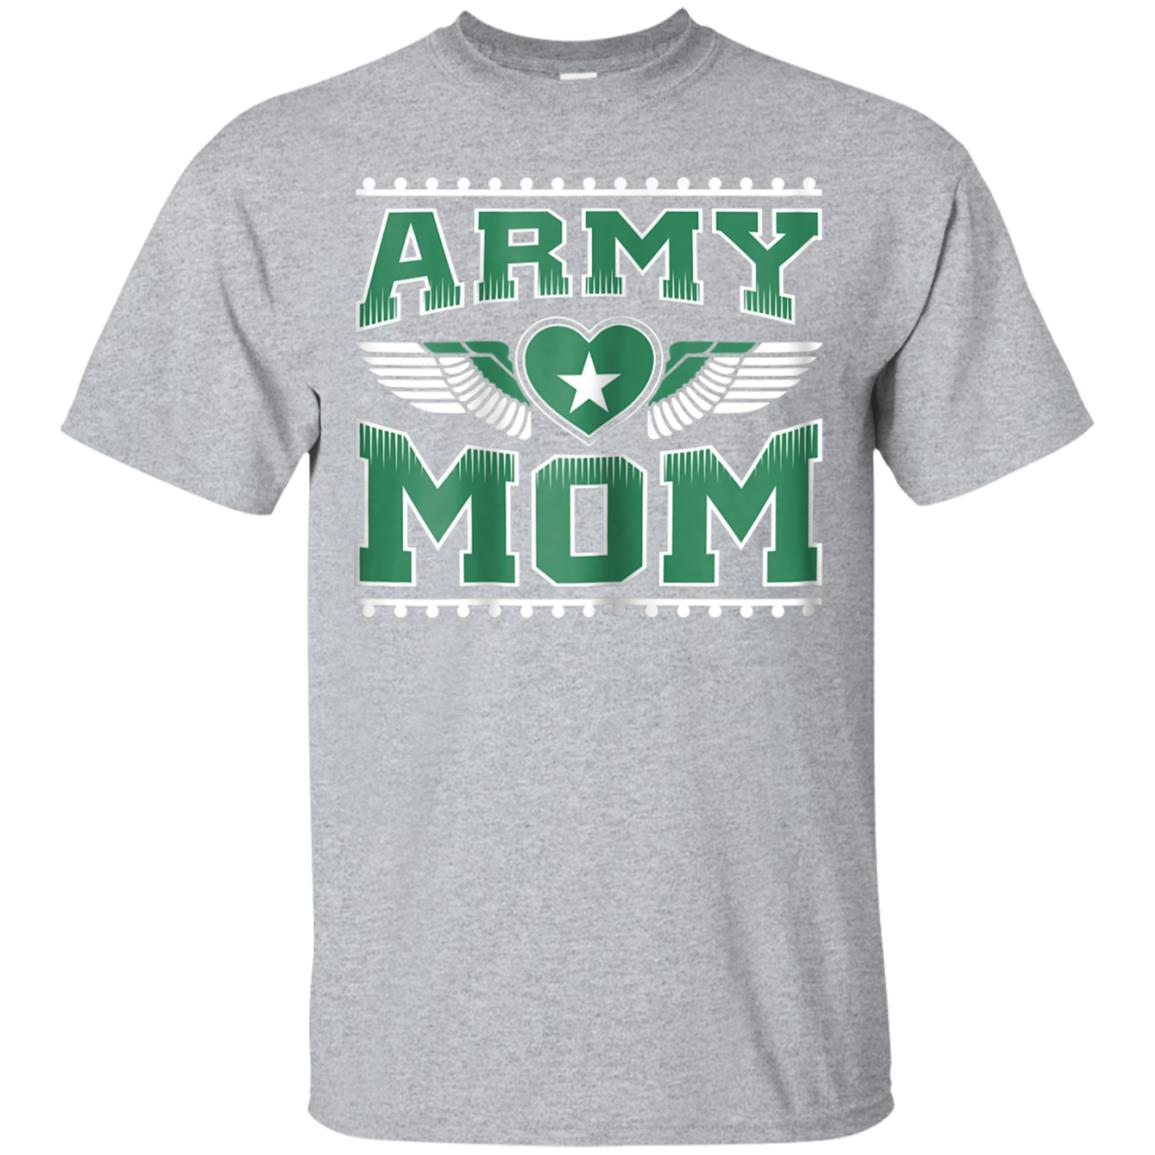 Awesome Womens Army Mom Shirt Military Mothers Day Birthday Gift